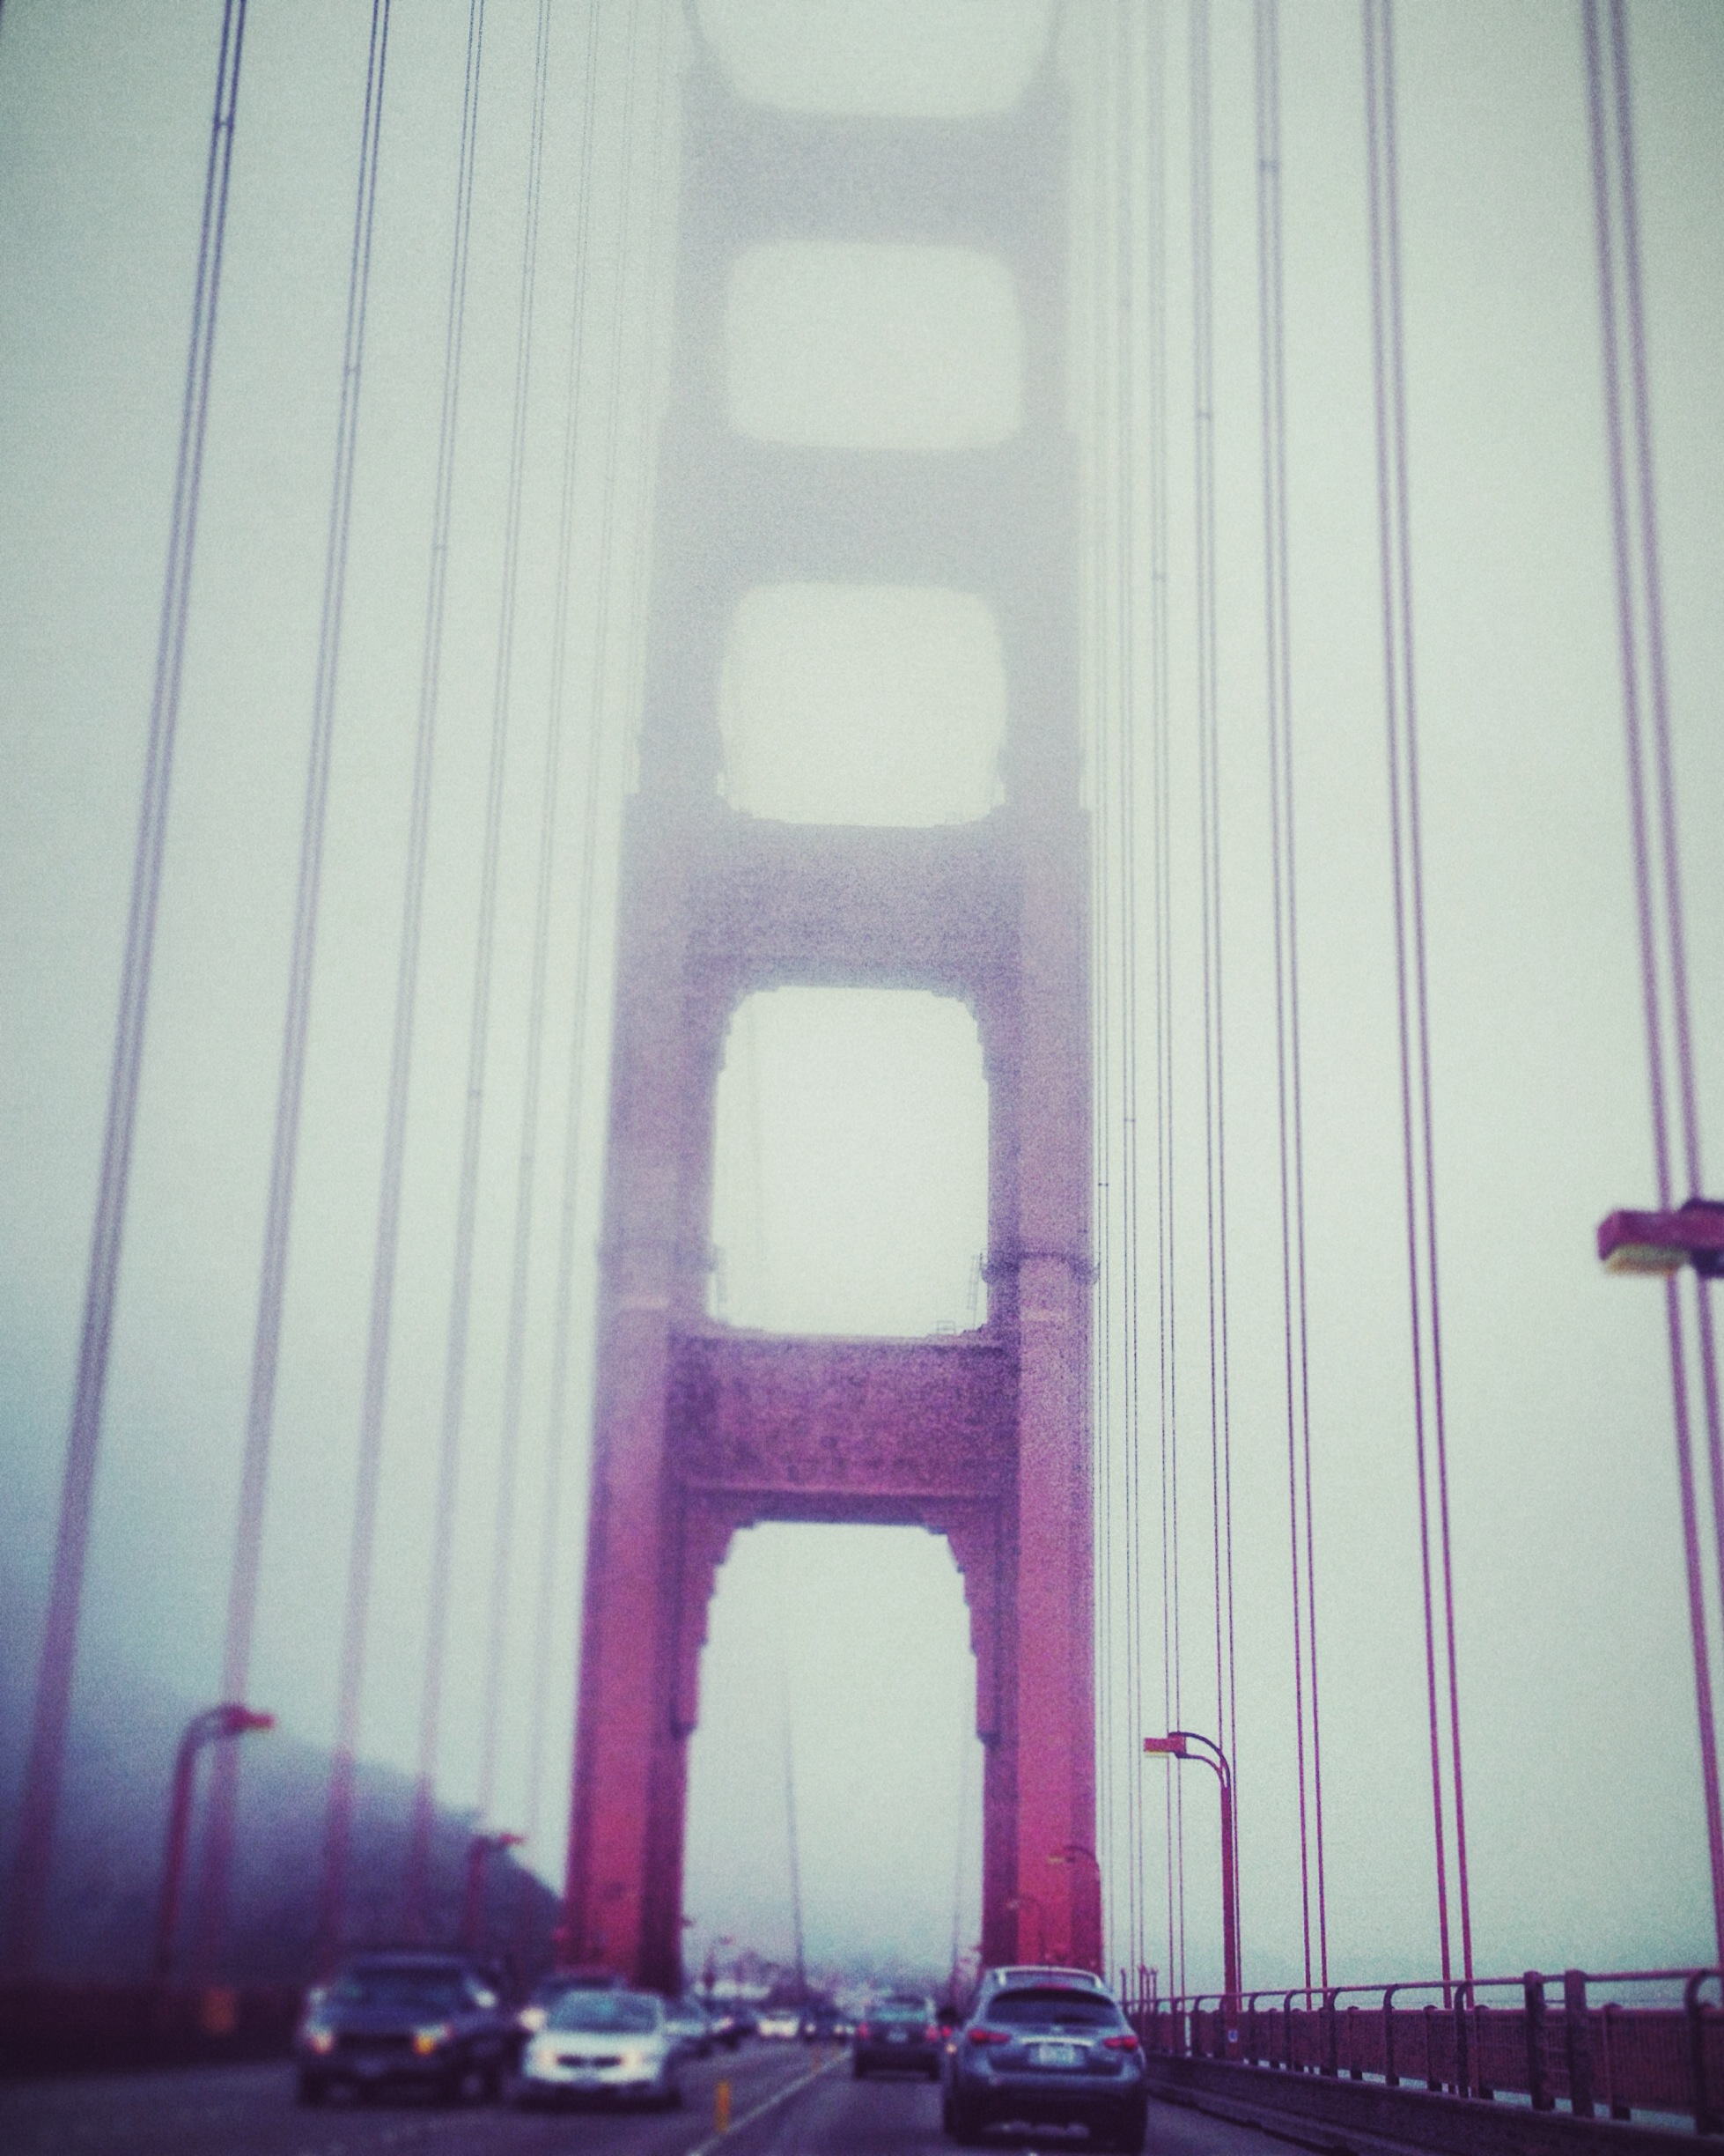 A foggy morning drive over the Golden Gate Bridge.